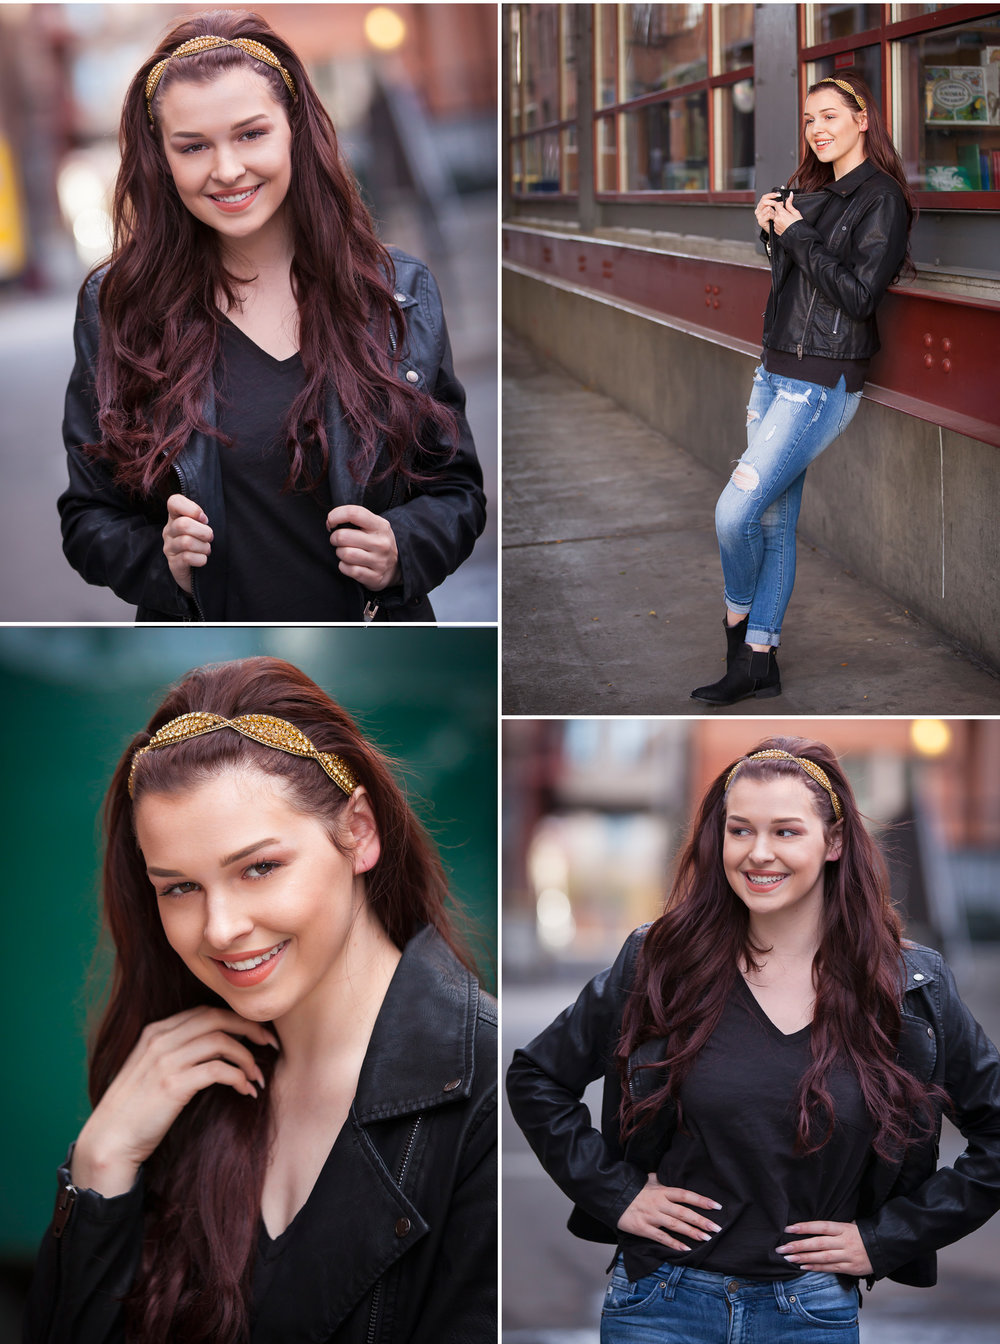 High School Senior Pictures in leather jacket, photographed in alley with Denver photographer Jennifer Koskinen, Merritt Portrait Studio